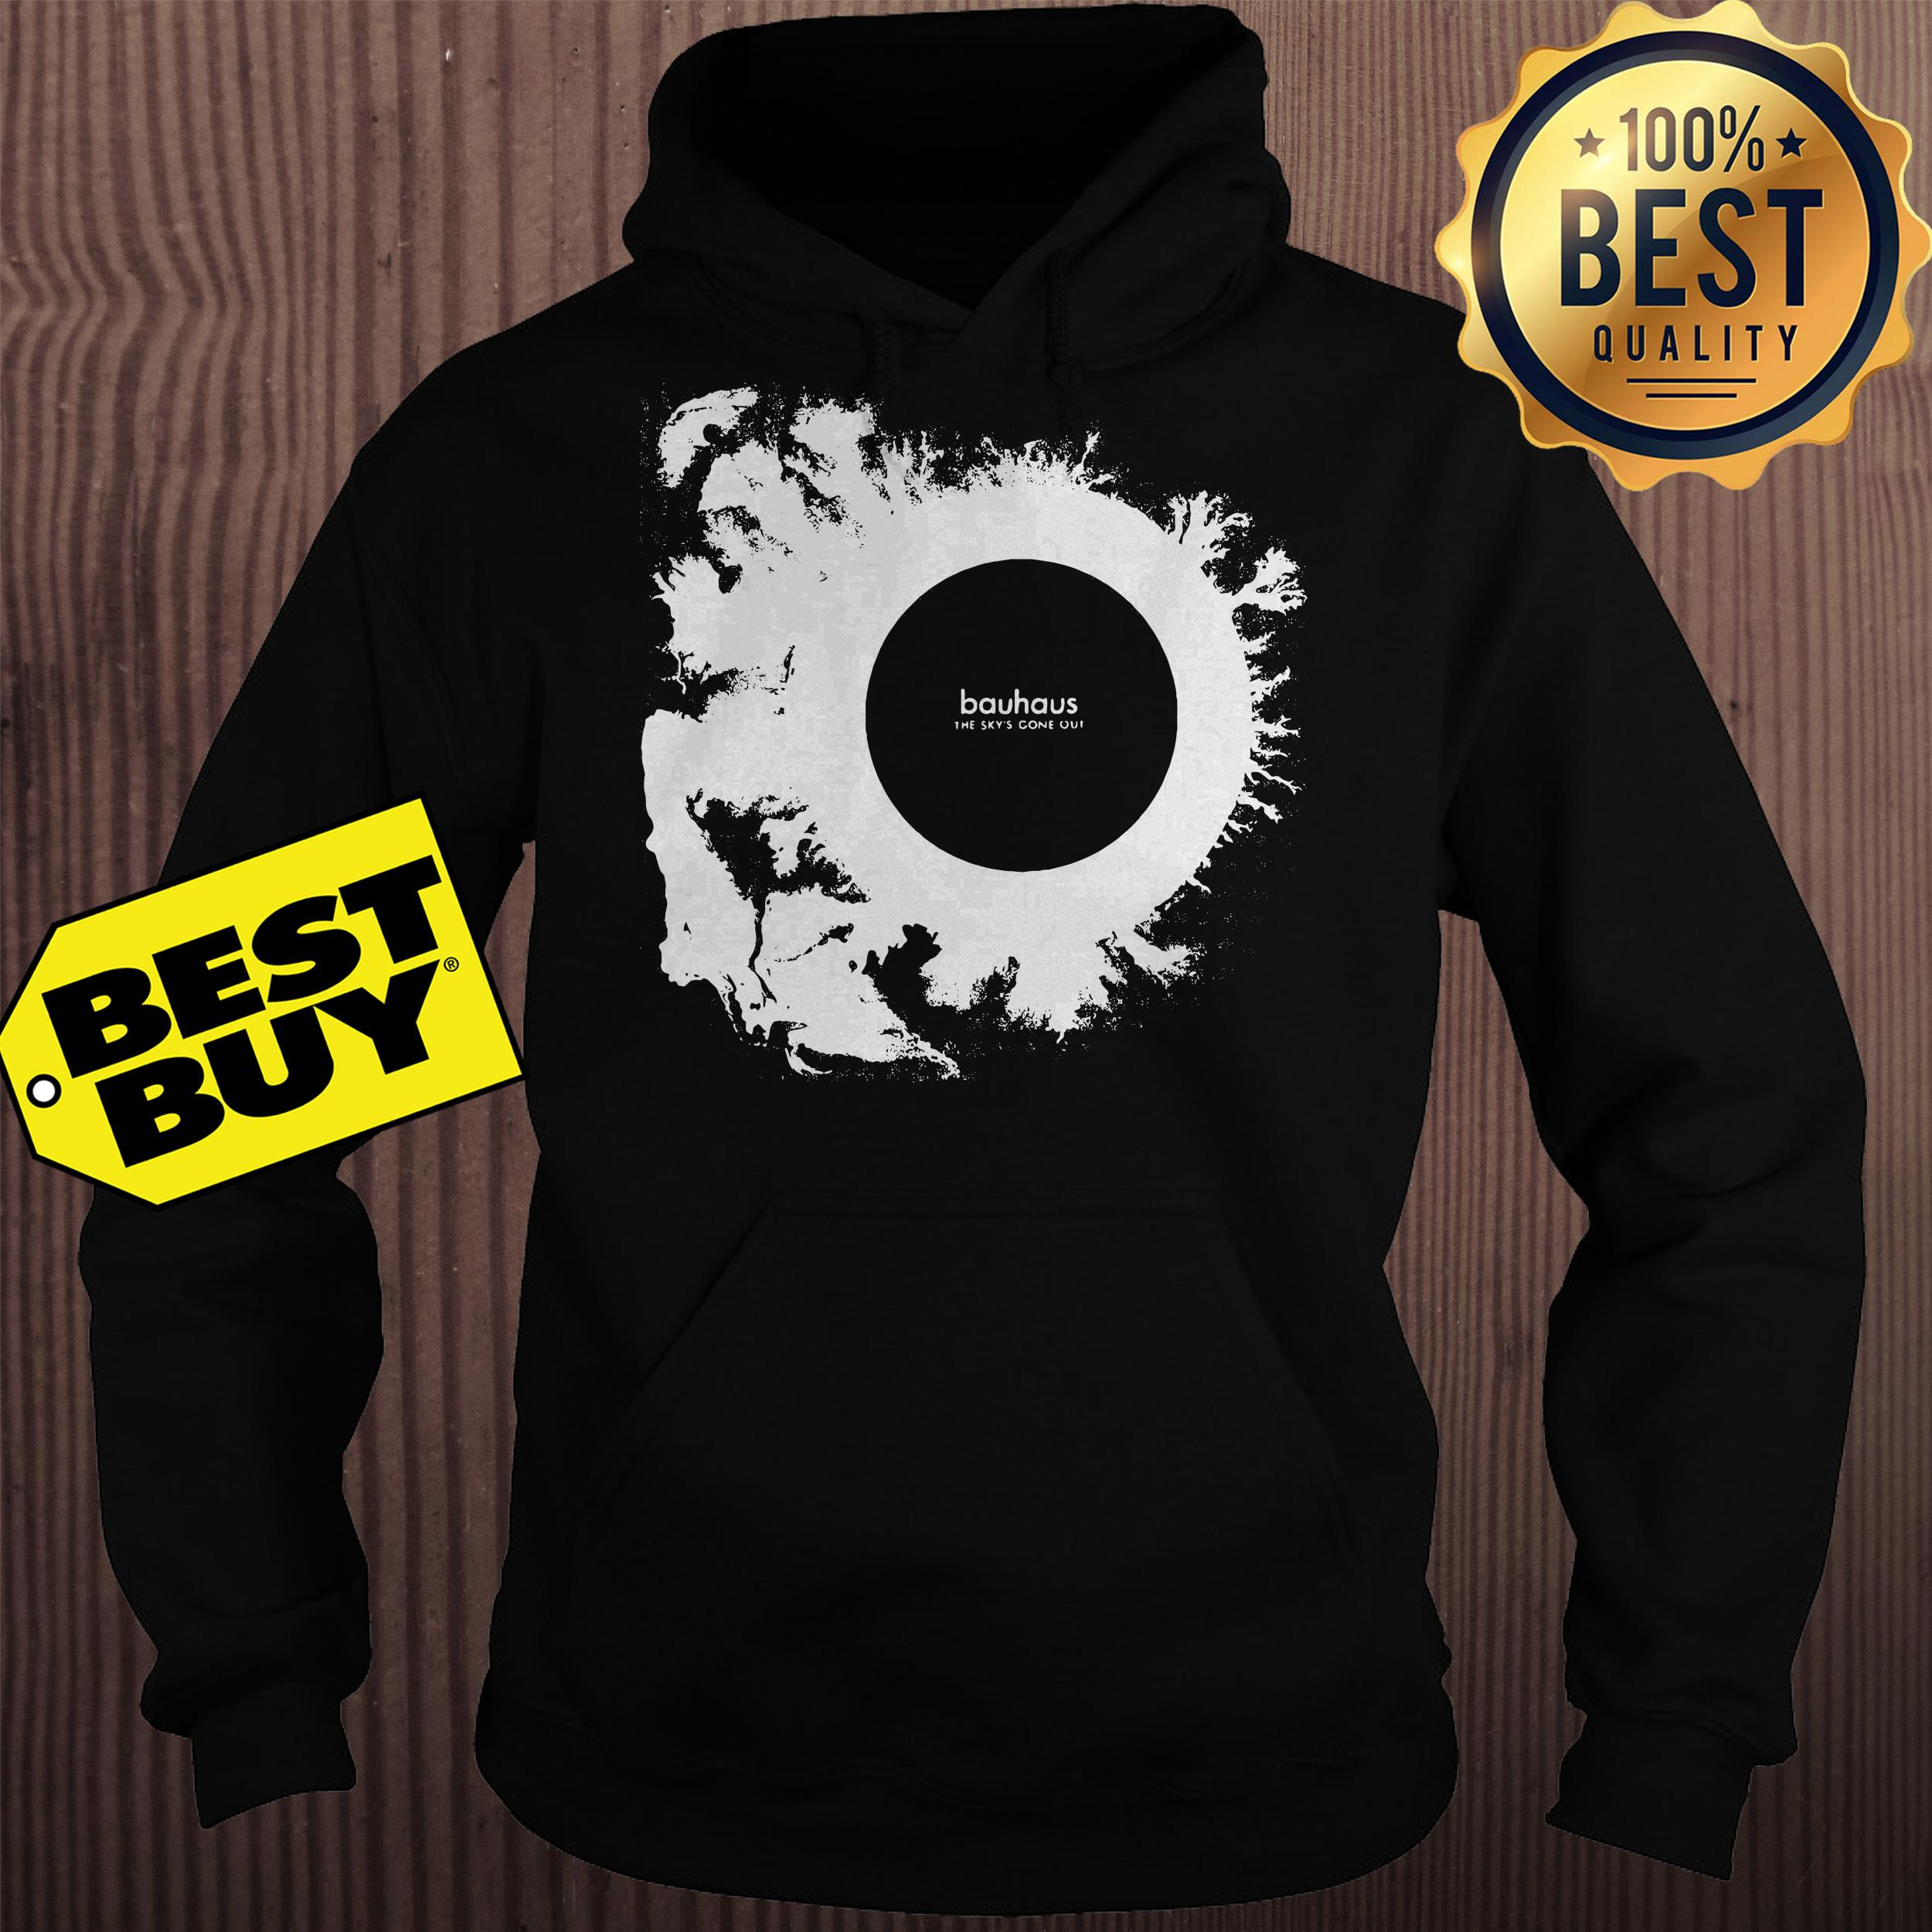 Bauhaus The Sky's Gone Out hoodie